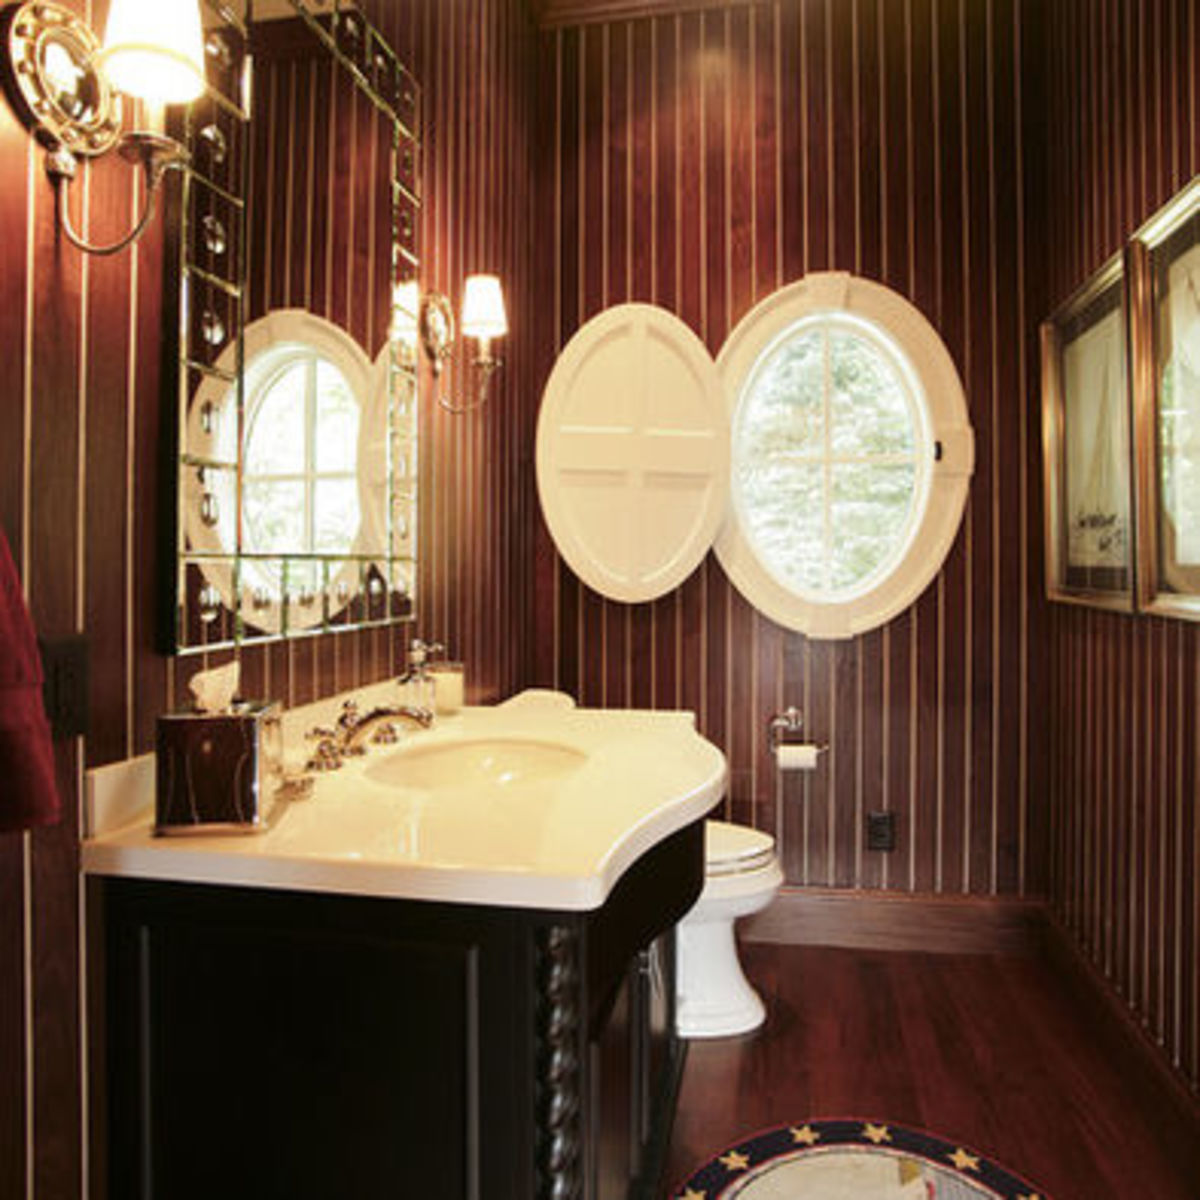 Nautical bathroom with walls made of wood boat flooring and an Oval Port Hole